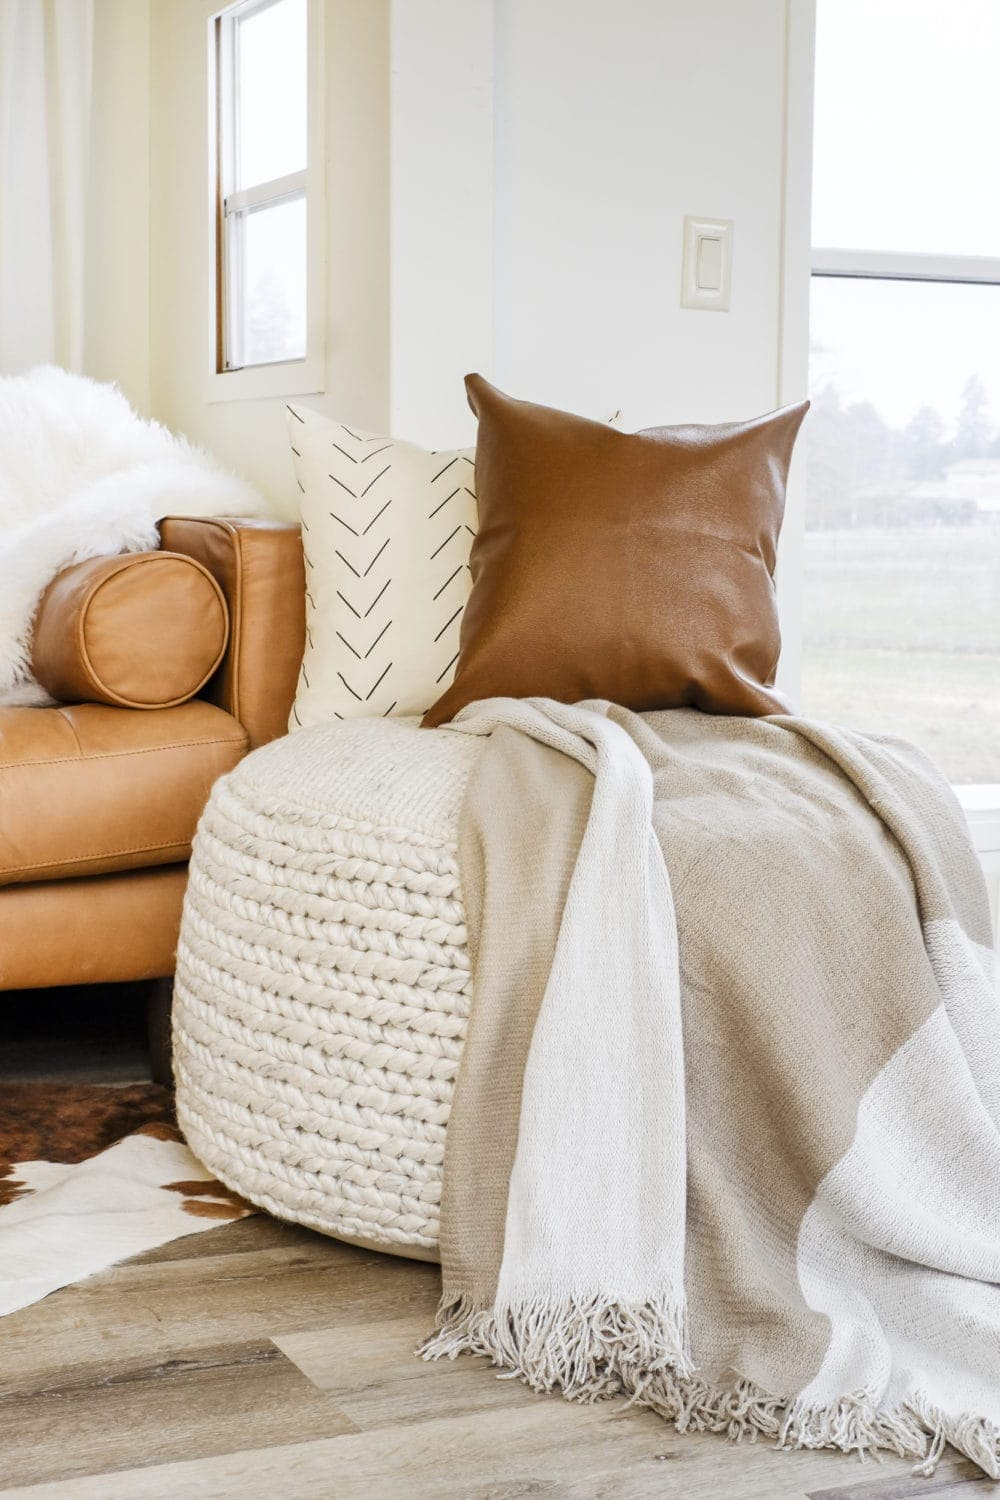 Large fabric pouf with two throw pillows and a blanket on top